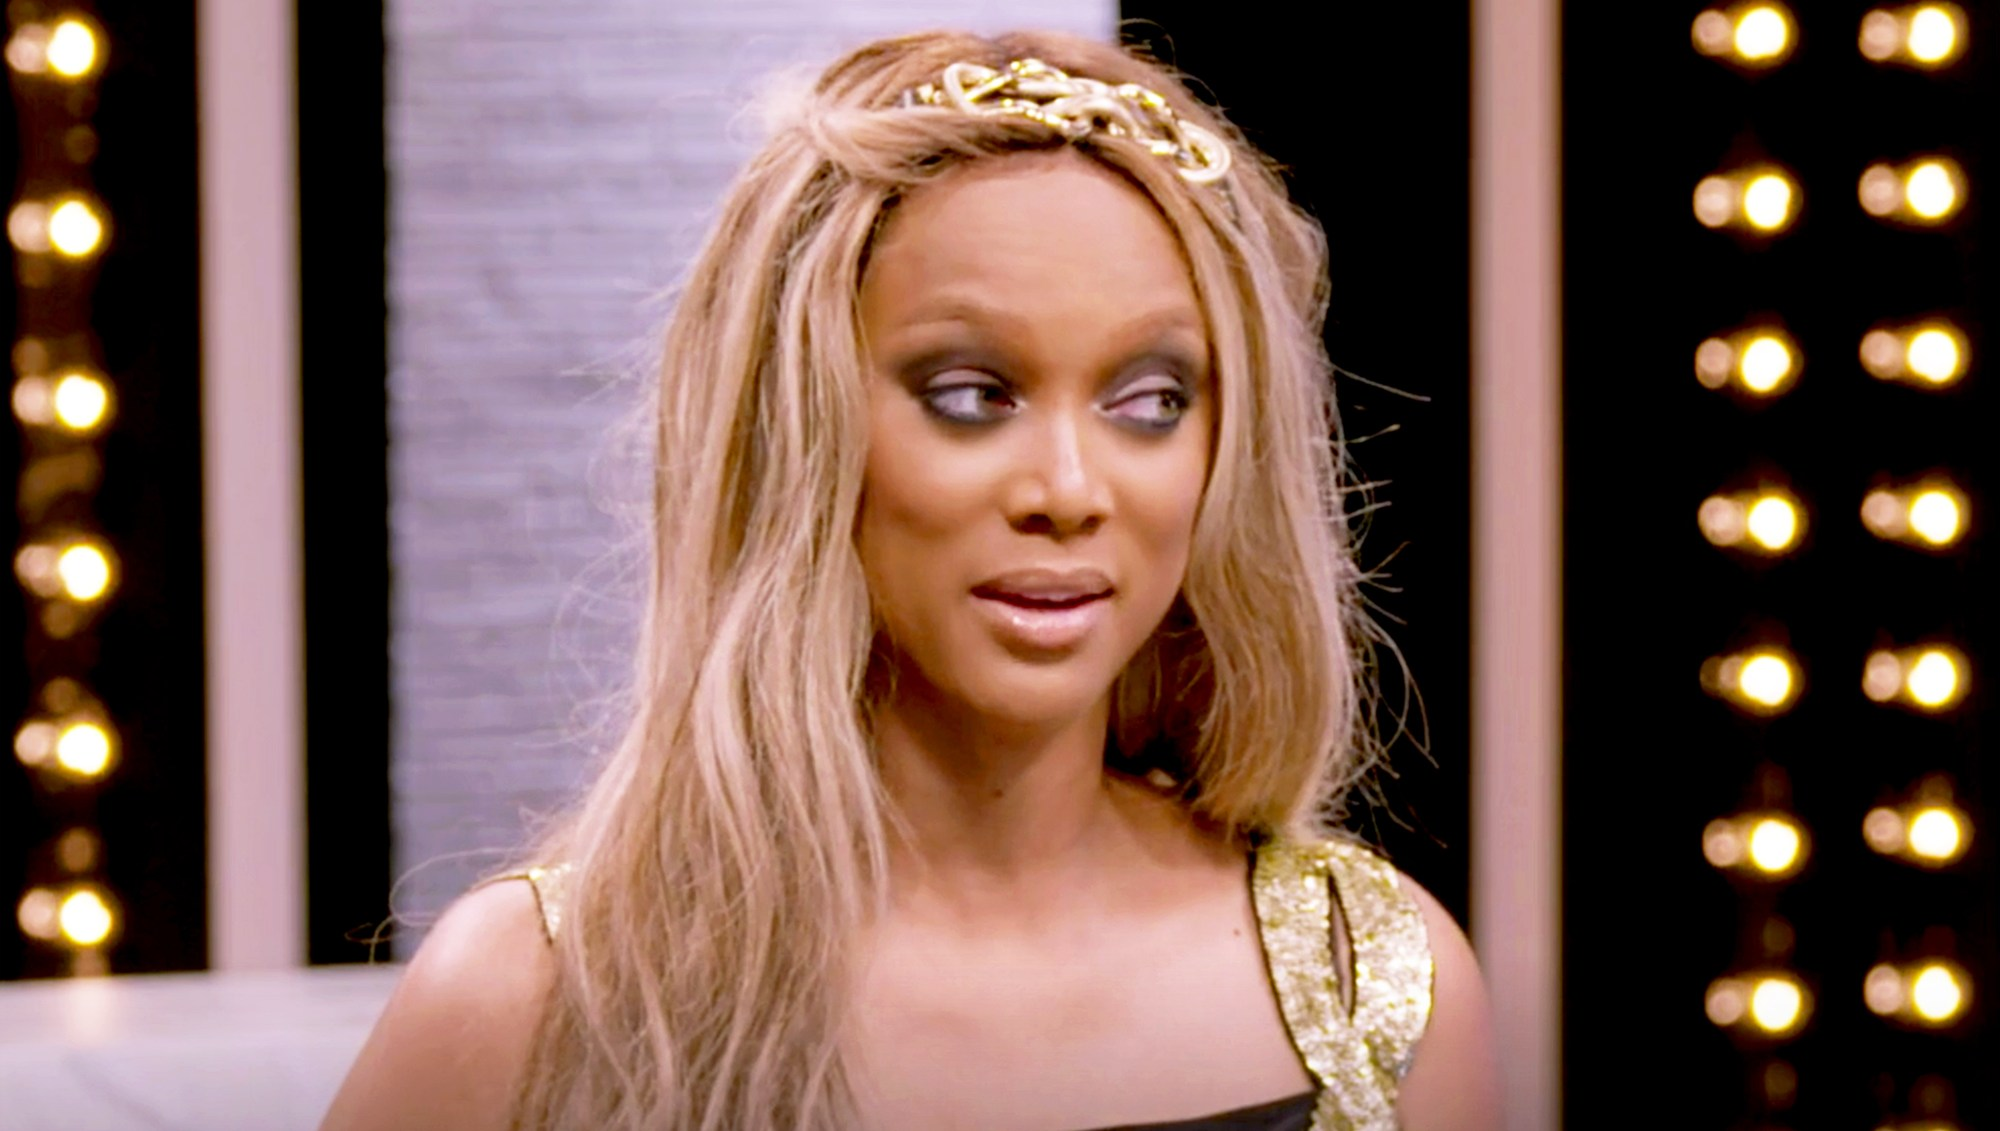 Tyra Banks on 'America's Next Top Model'